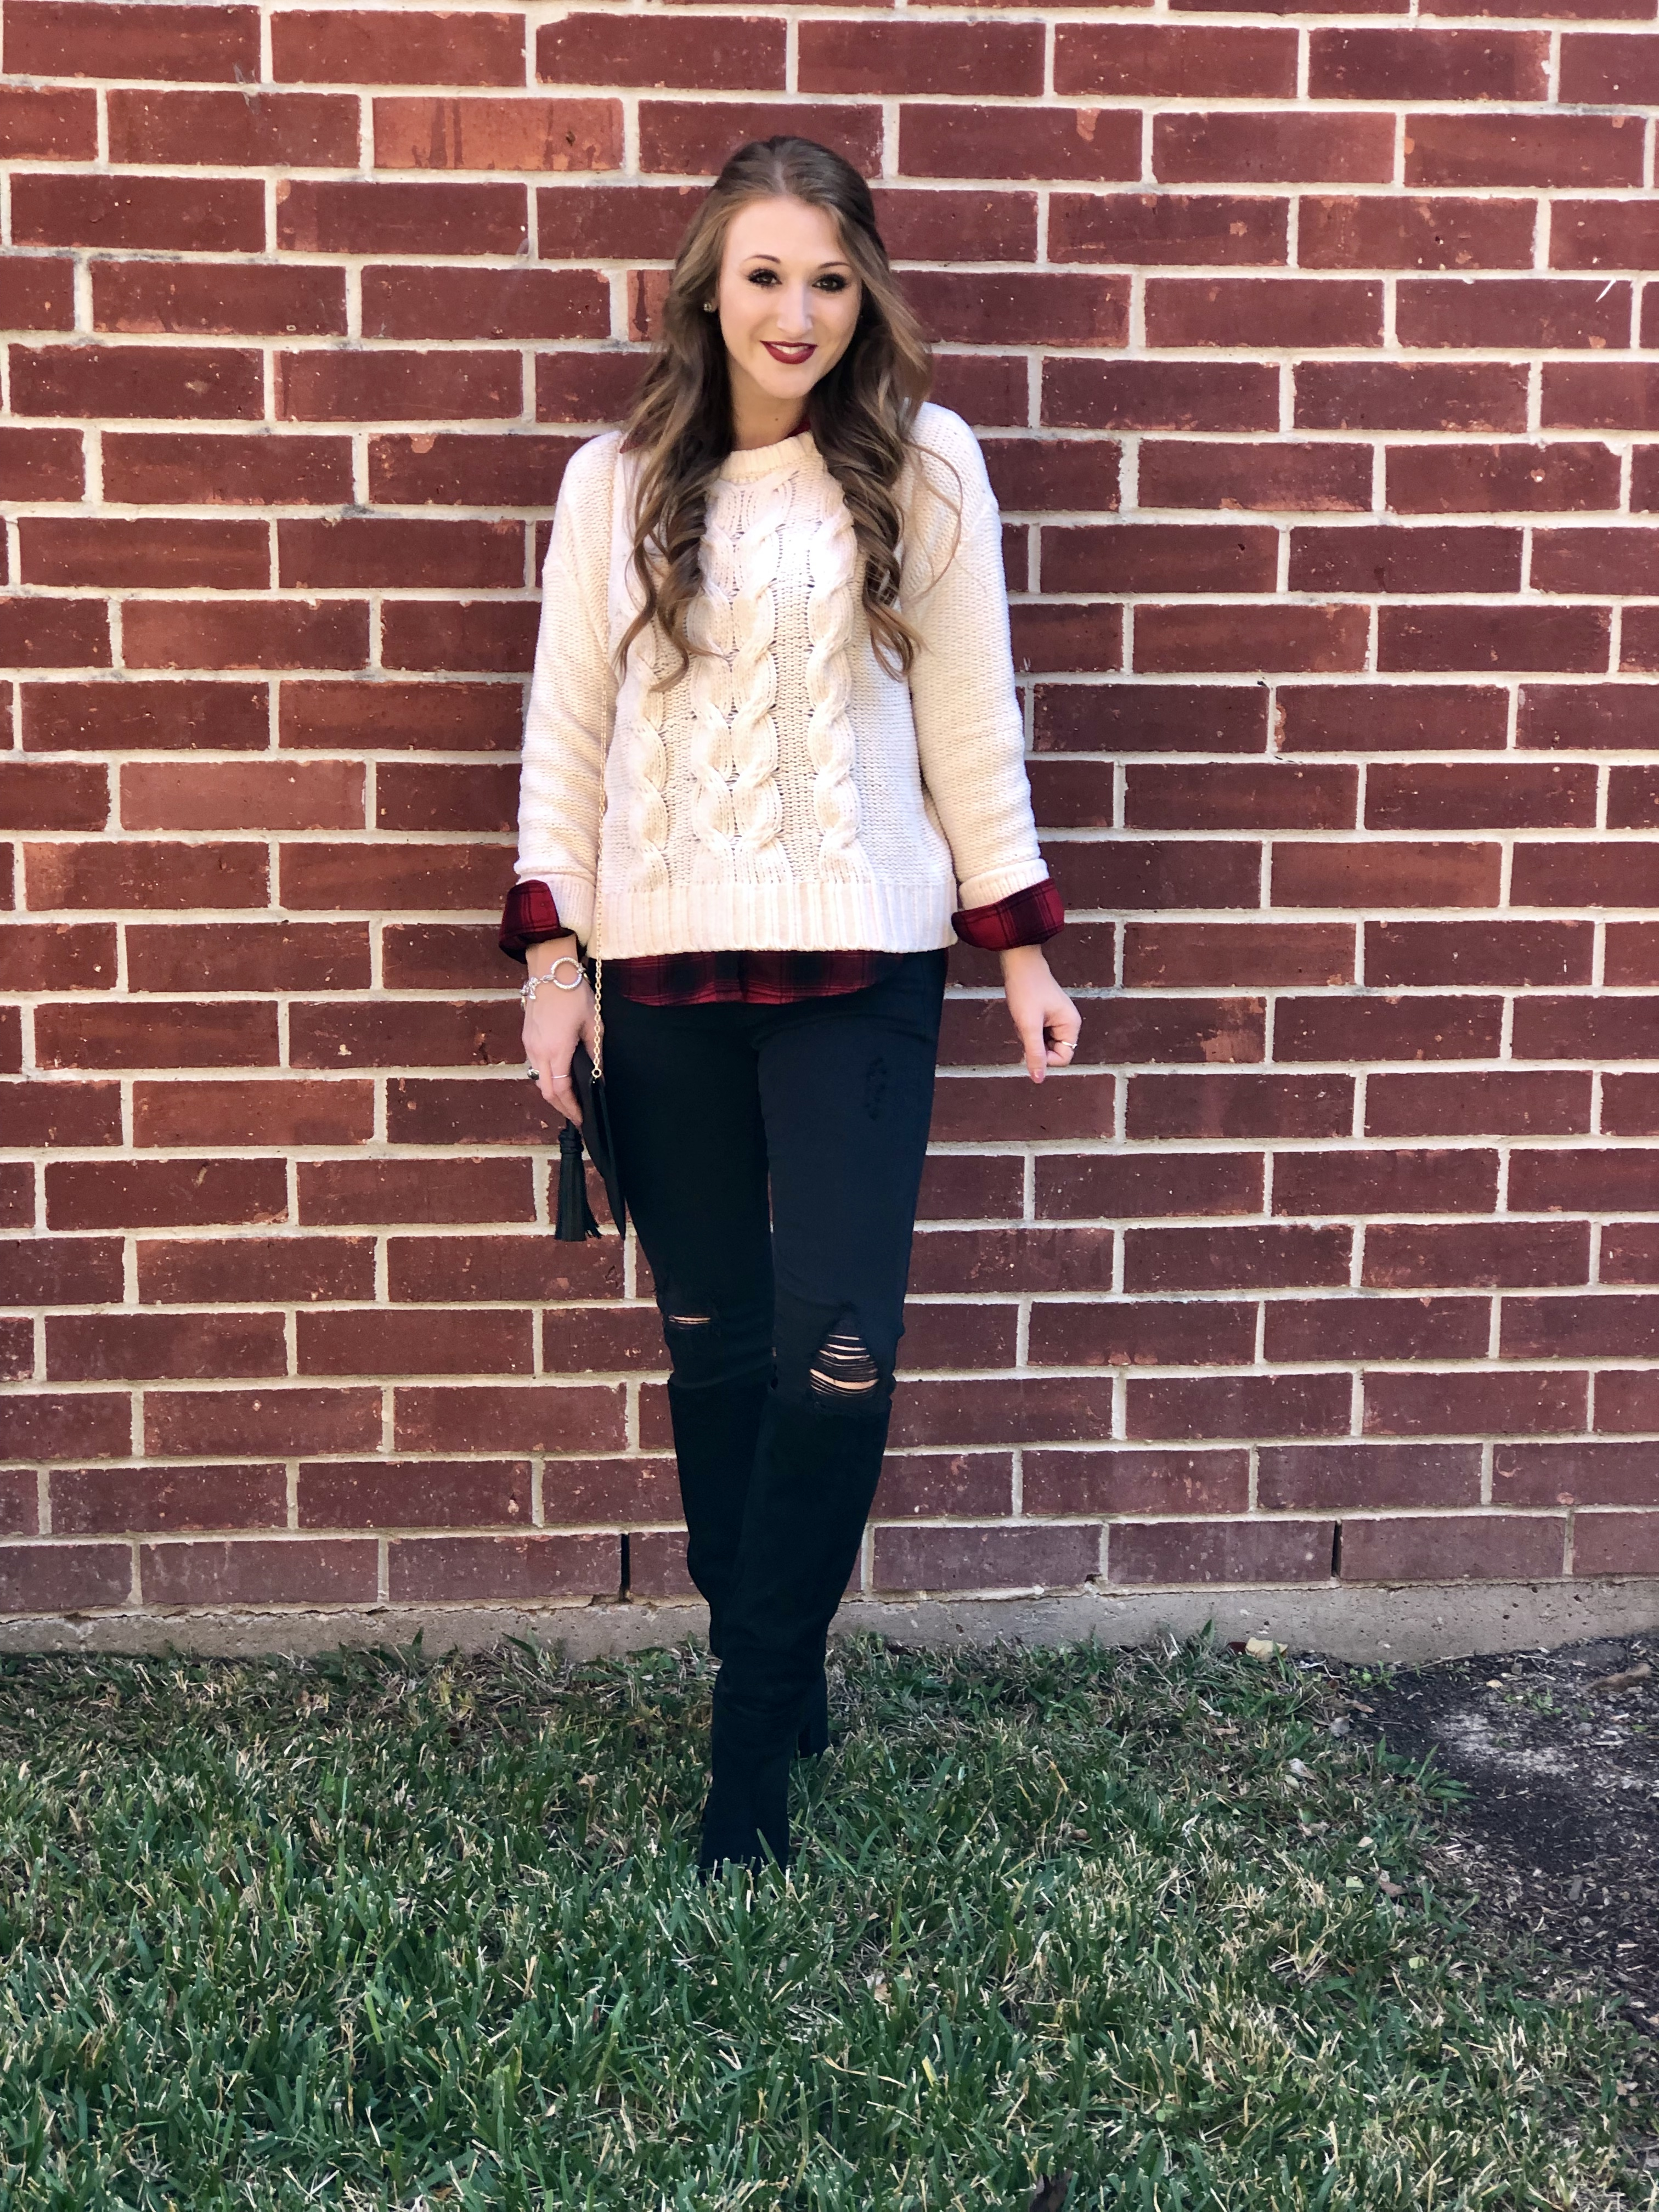 5 Festive and Affordable Holiday Outfit Ideas | Chaos and Coffee